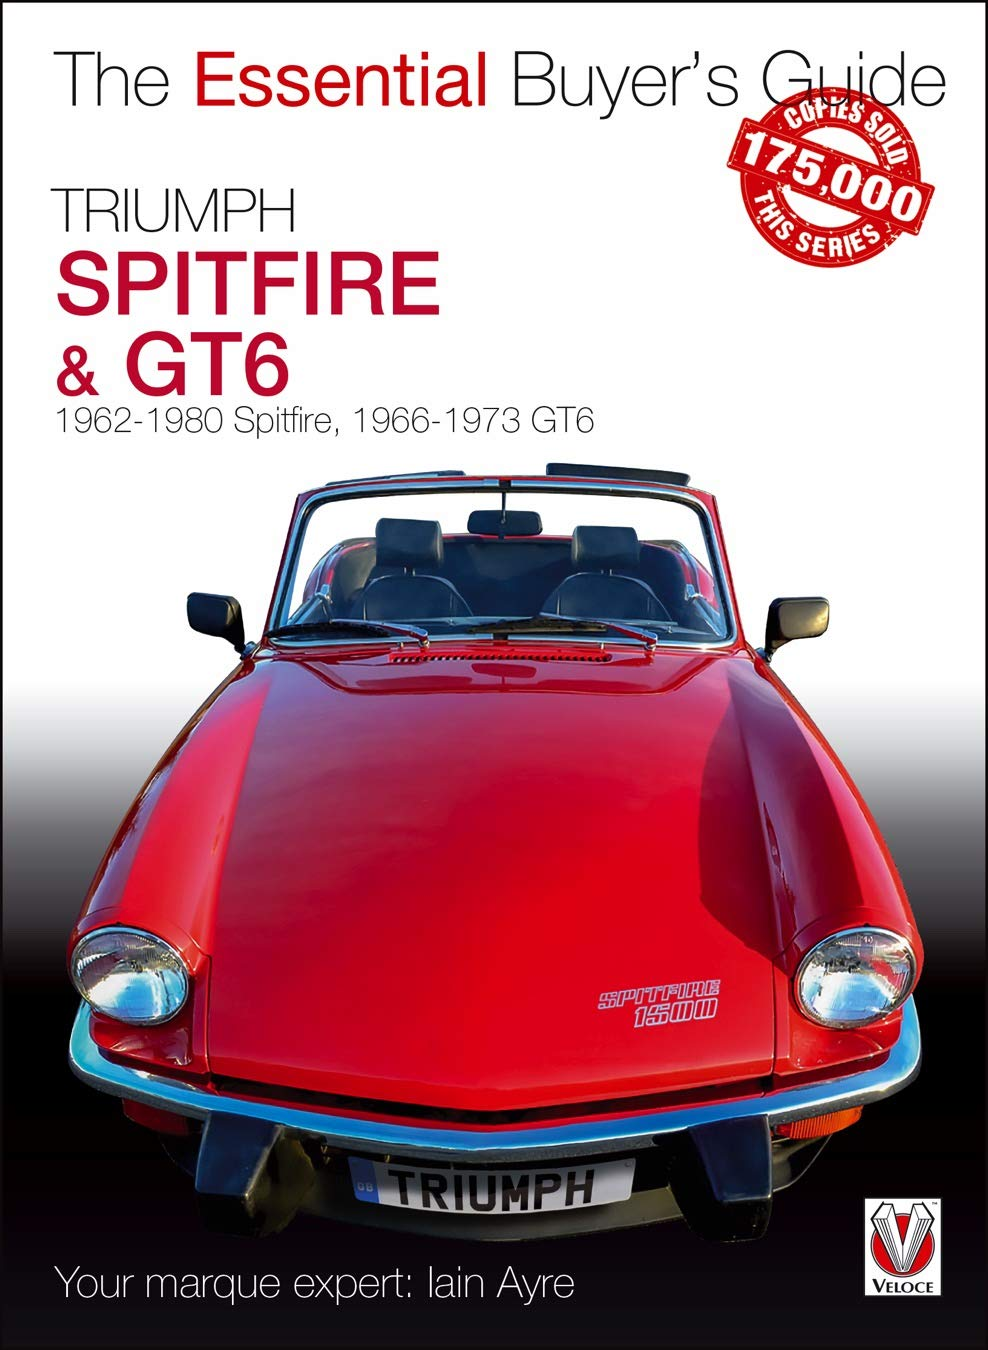 Triumph Spitfire And GT6  The Essential Buyer's Guide